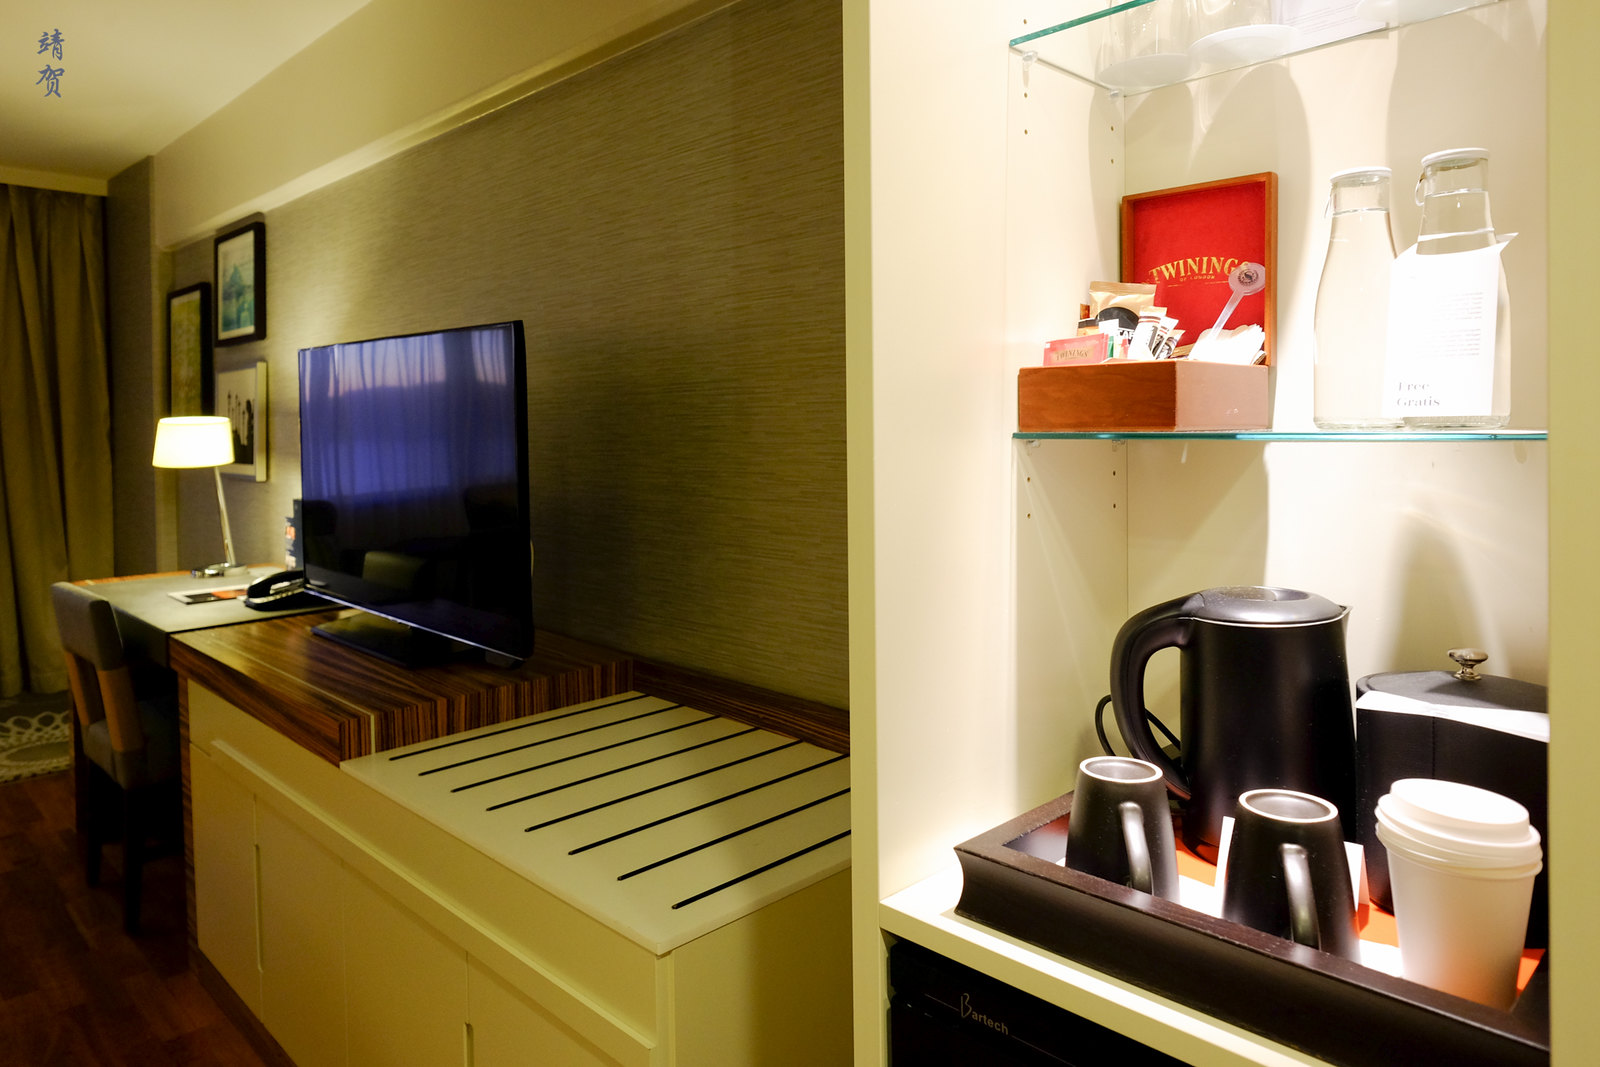 Minibar and luggage bench